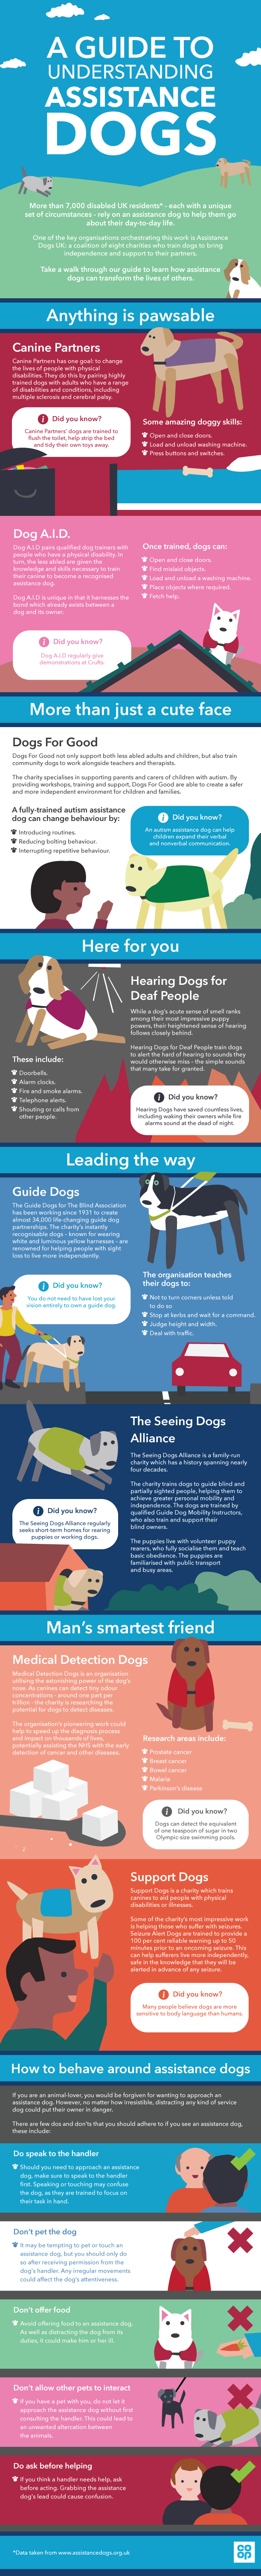 A guide to assistance dogs